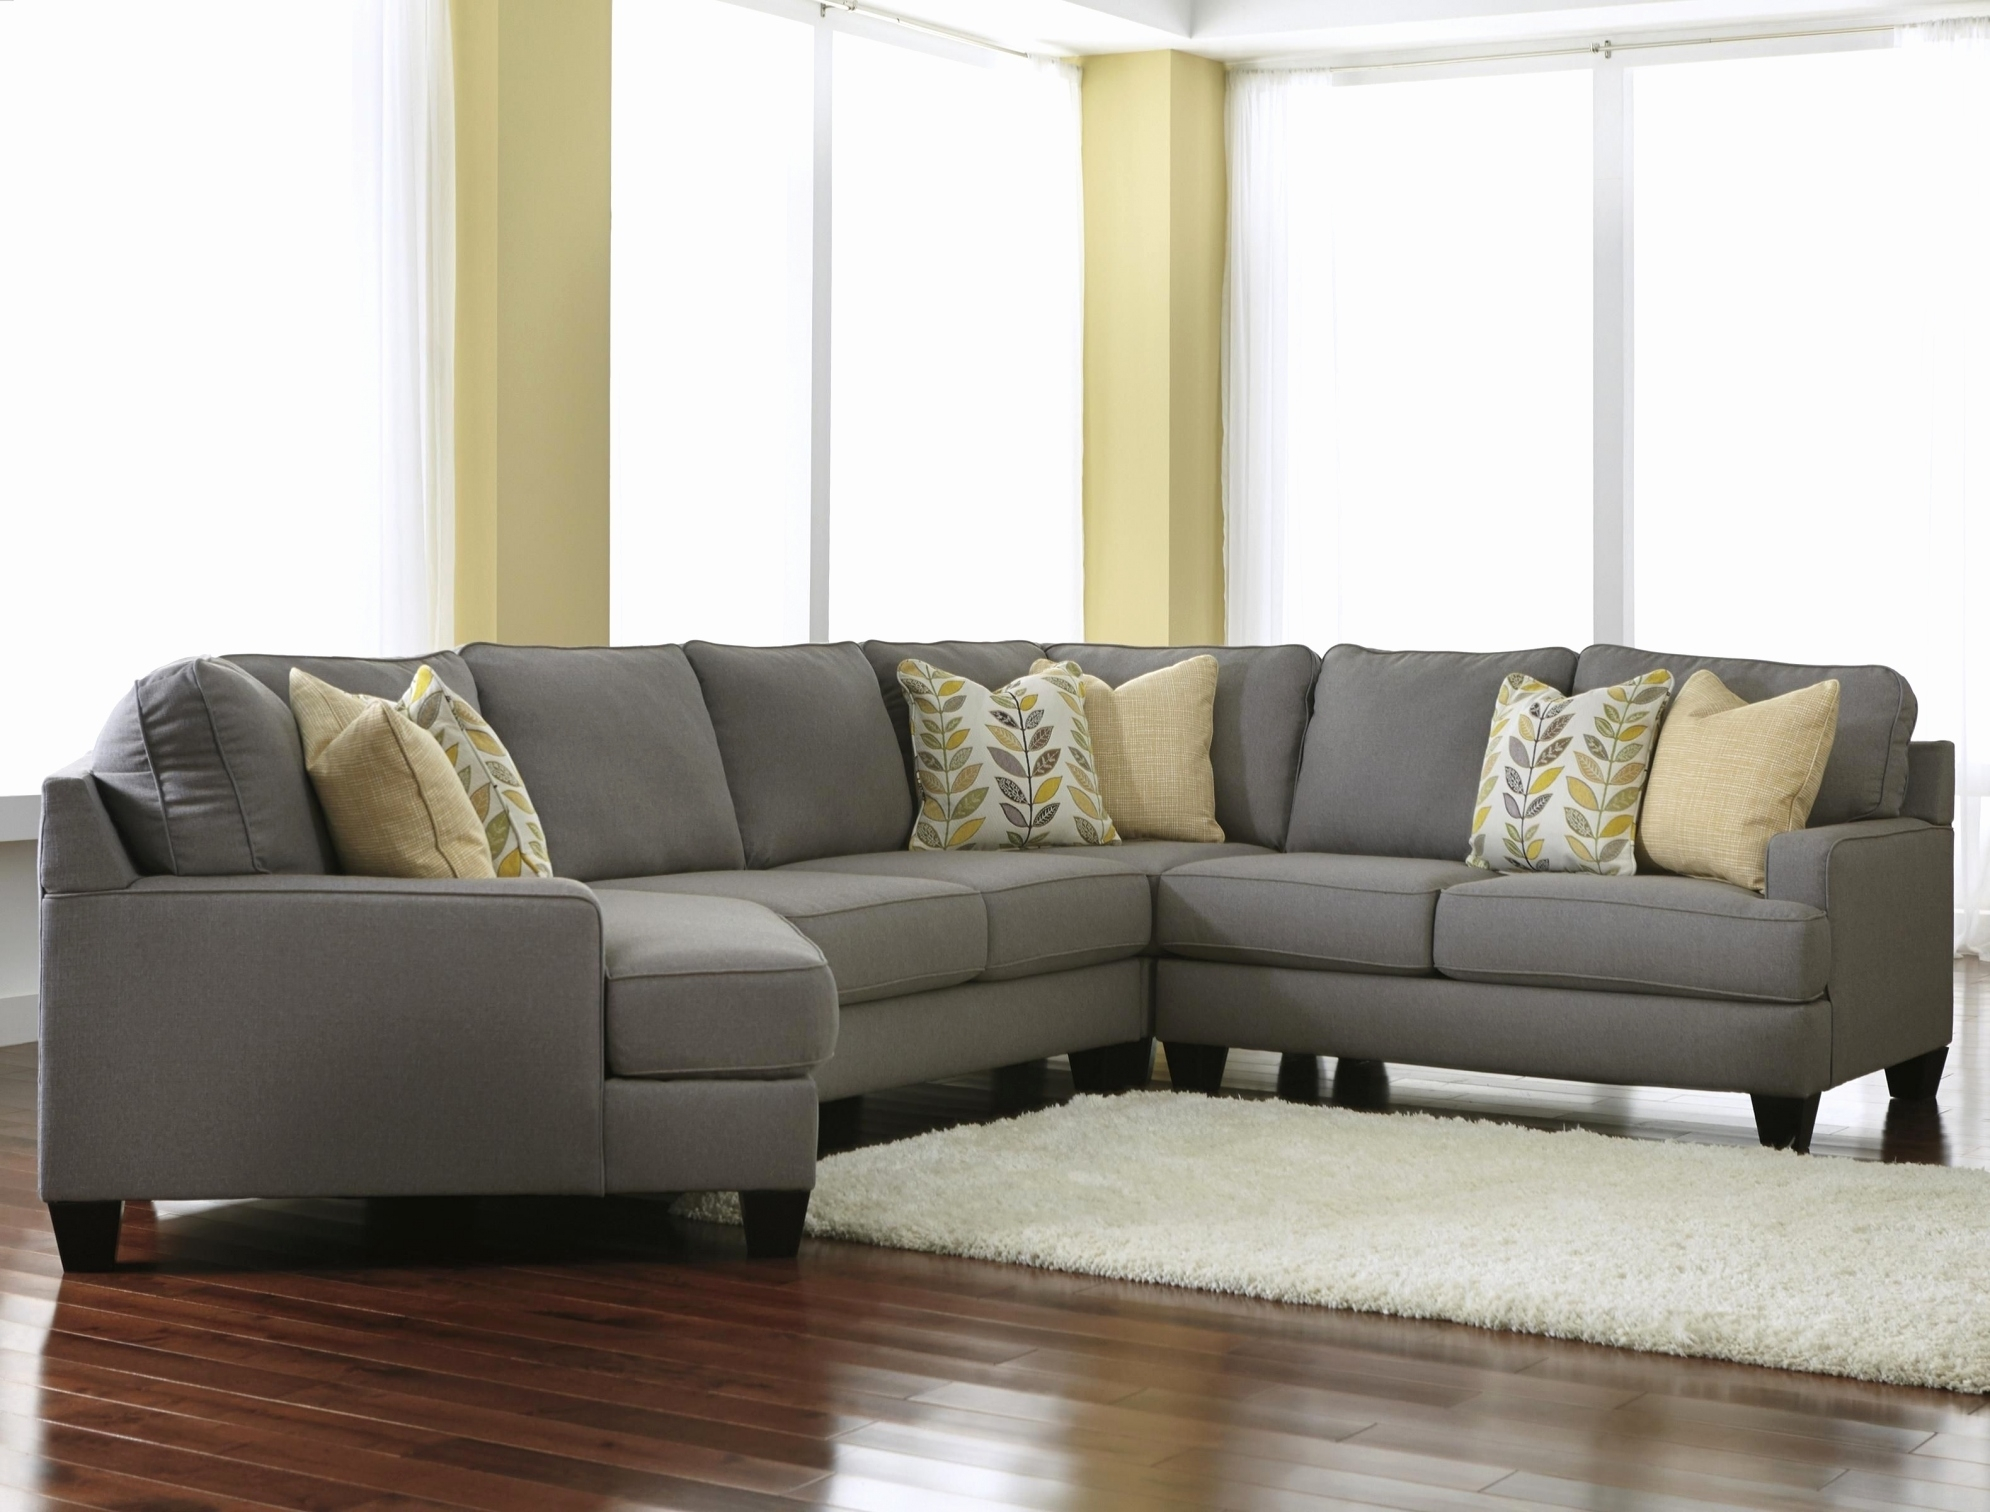 32 Lovely Sectional Sofas Clearance Photos – Sectional Sofa Design Ideas With Regard To Des Moines Ia Sectional Sofas (Image 1 of 10)